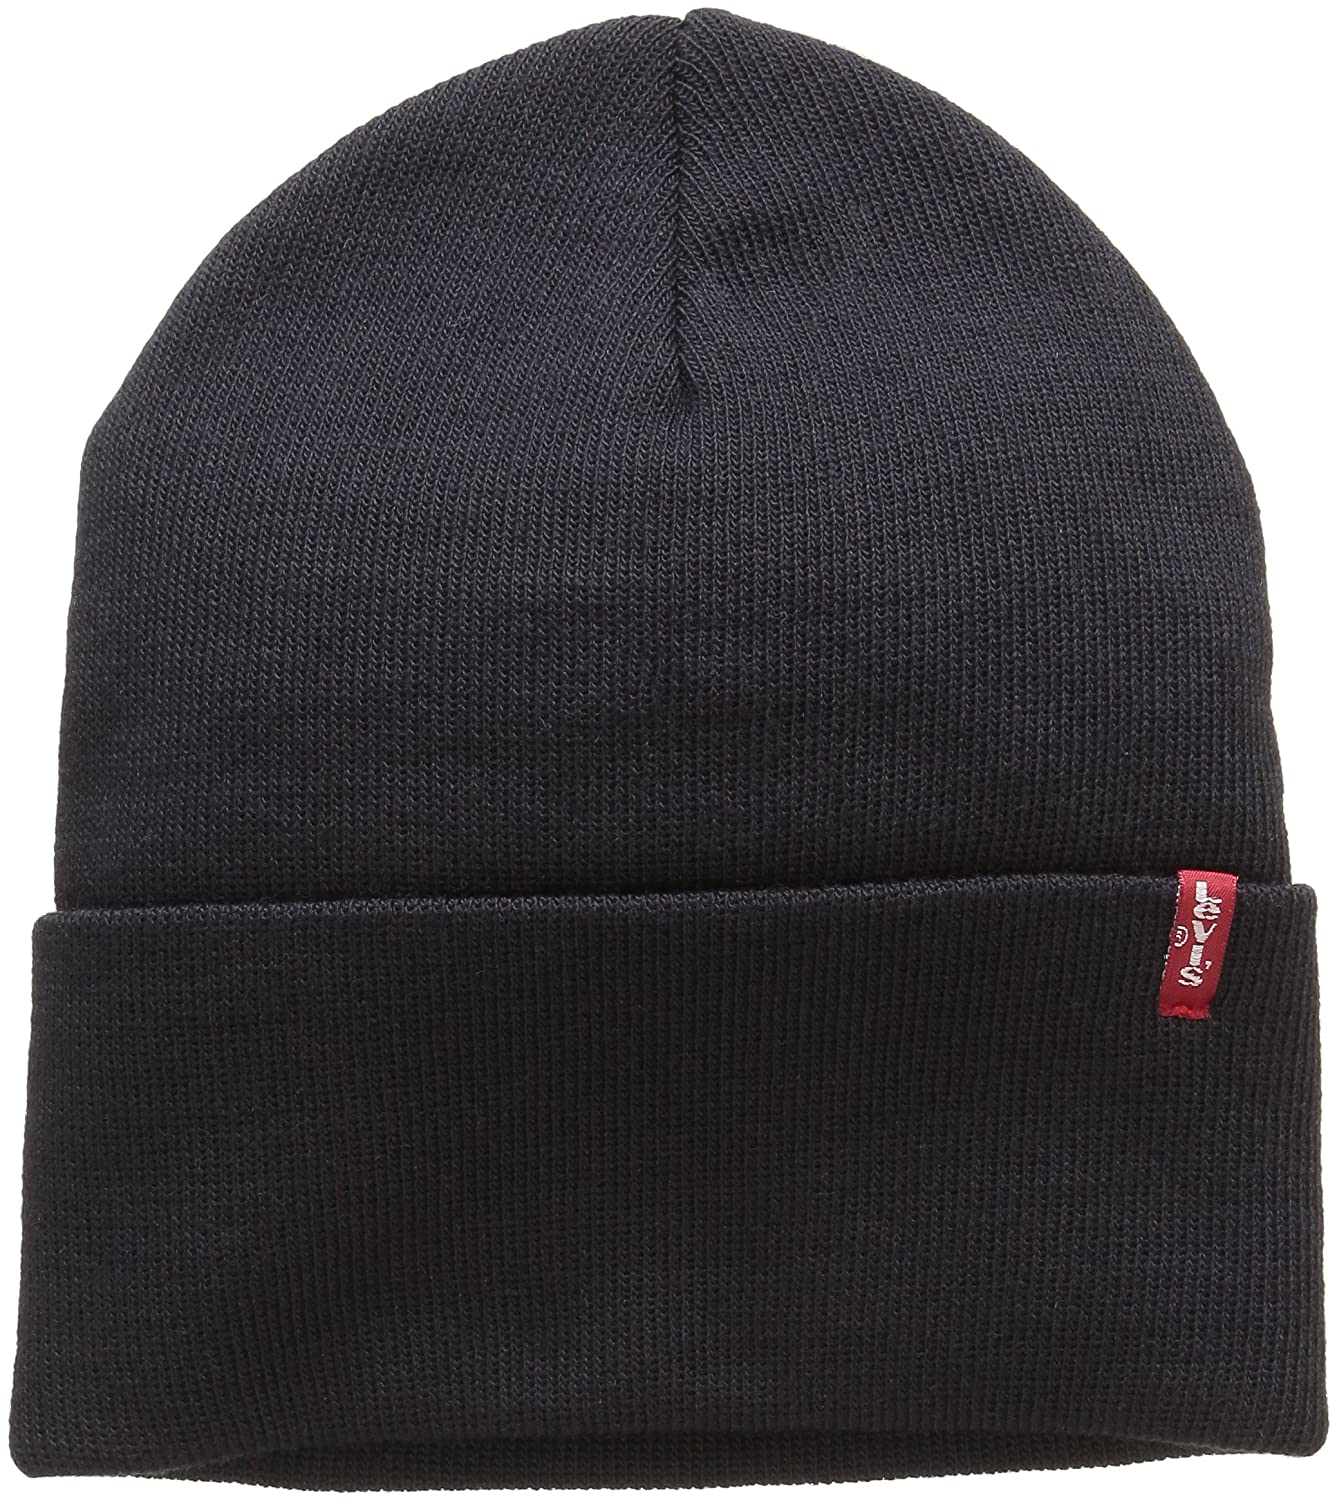 Levi's New Slouchy Beanie W Red Tab Detail, Cuffia Unisex-Adulto Cuffia Unisex - Adulto Blu (Blue) Taglia unica Levi' s